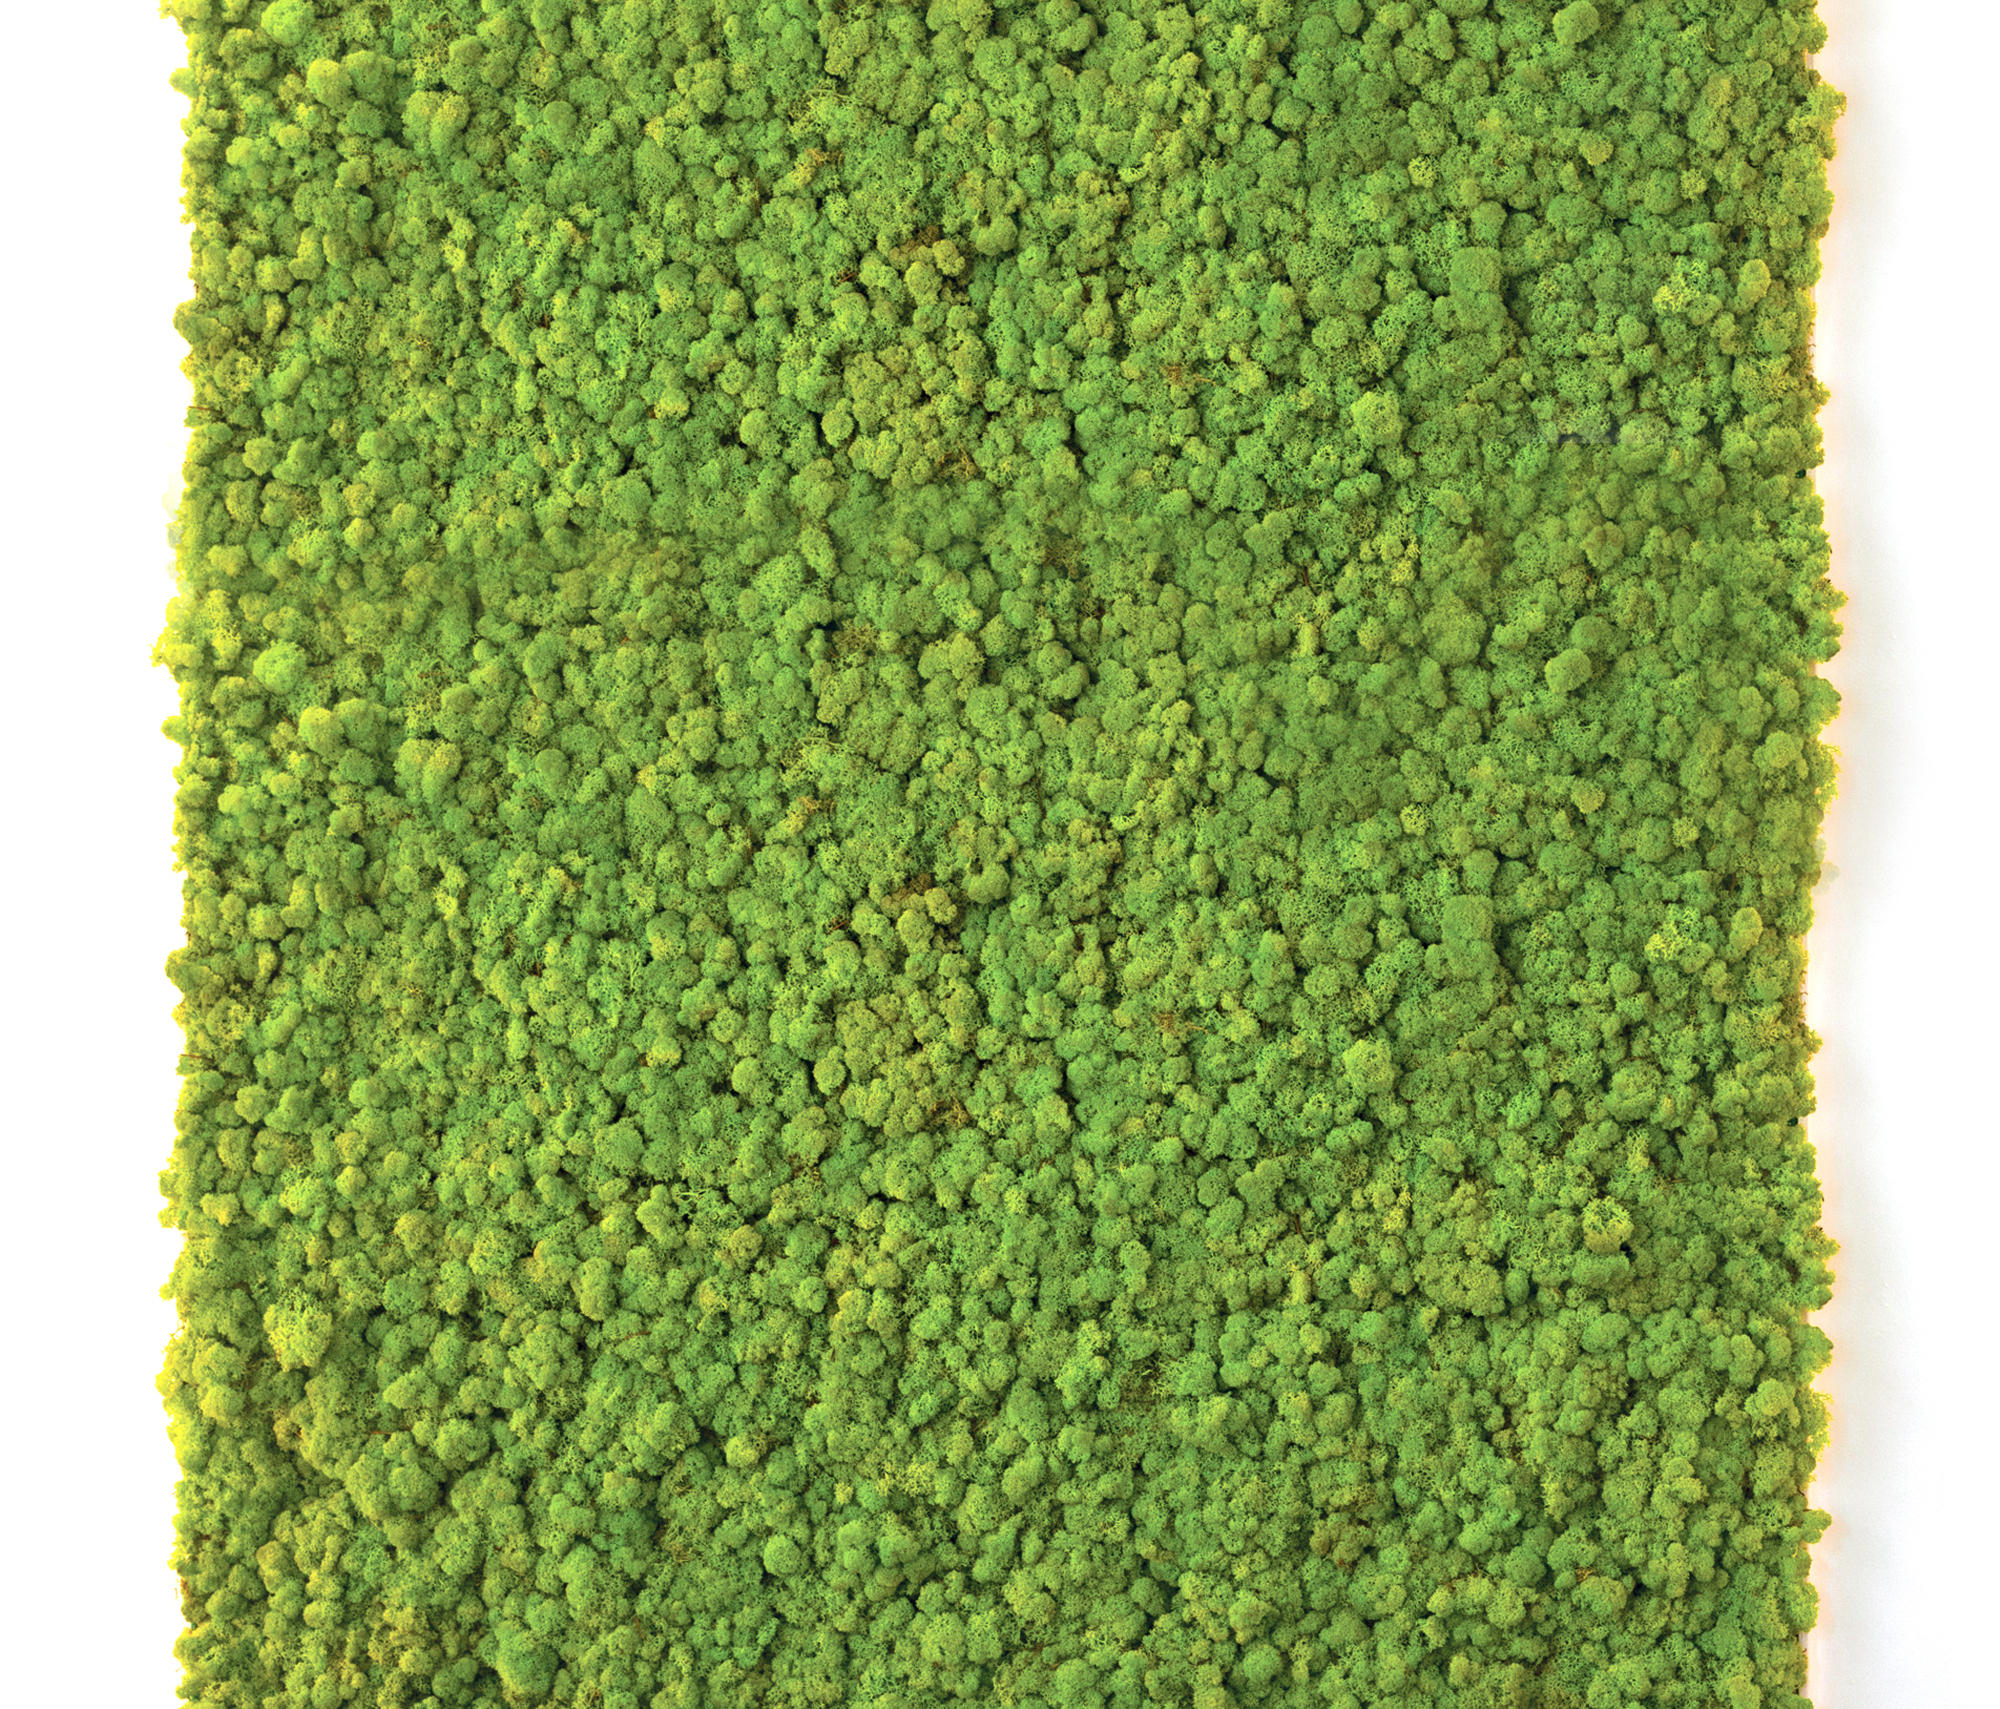 Home Decoration With Plants Moss Wall Living Green Walls From Verde Profilo